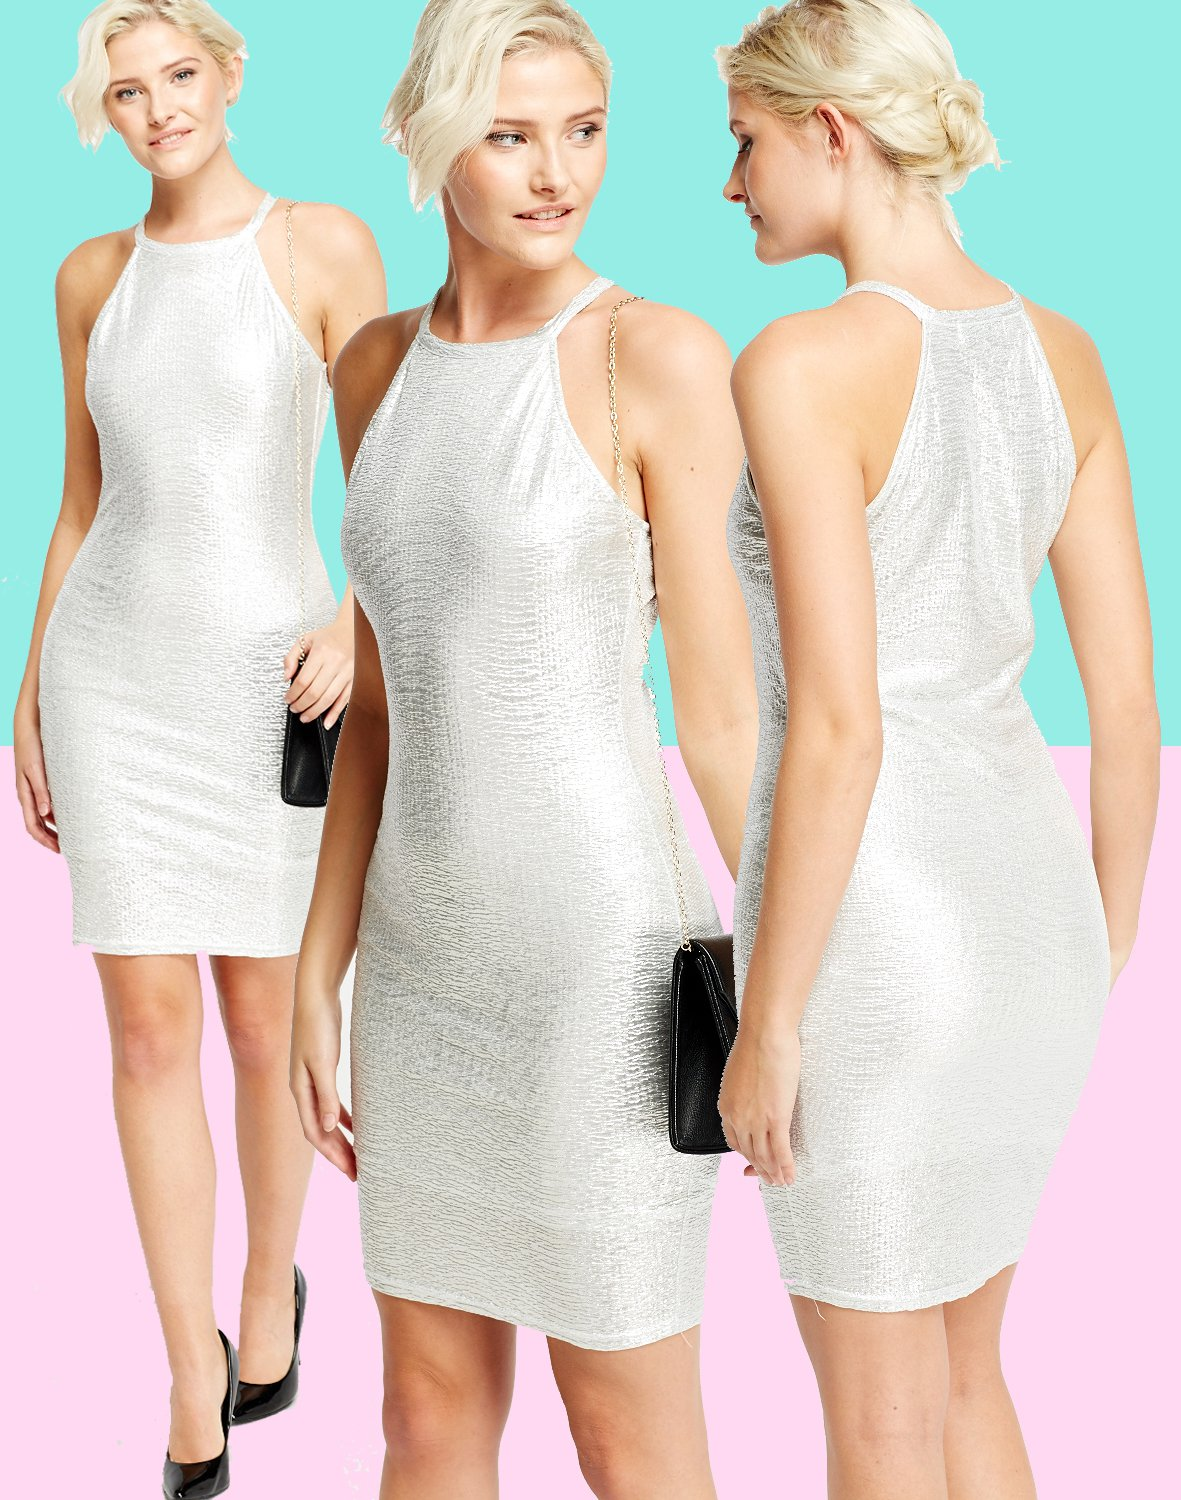 Silver Metallic Bodycon Dress Size Medium UK 8-10 � FREE Shipping Within Europe �